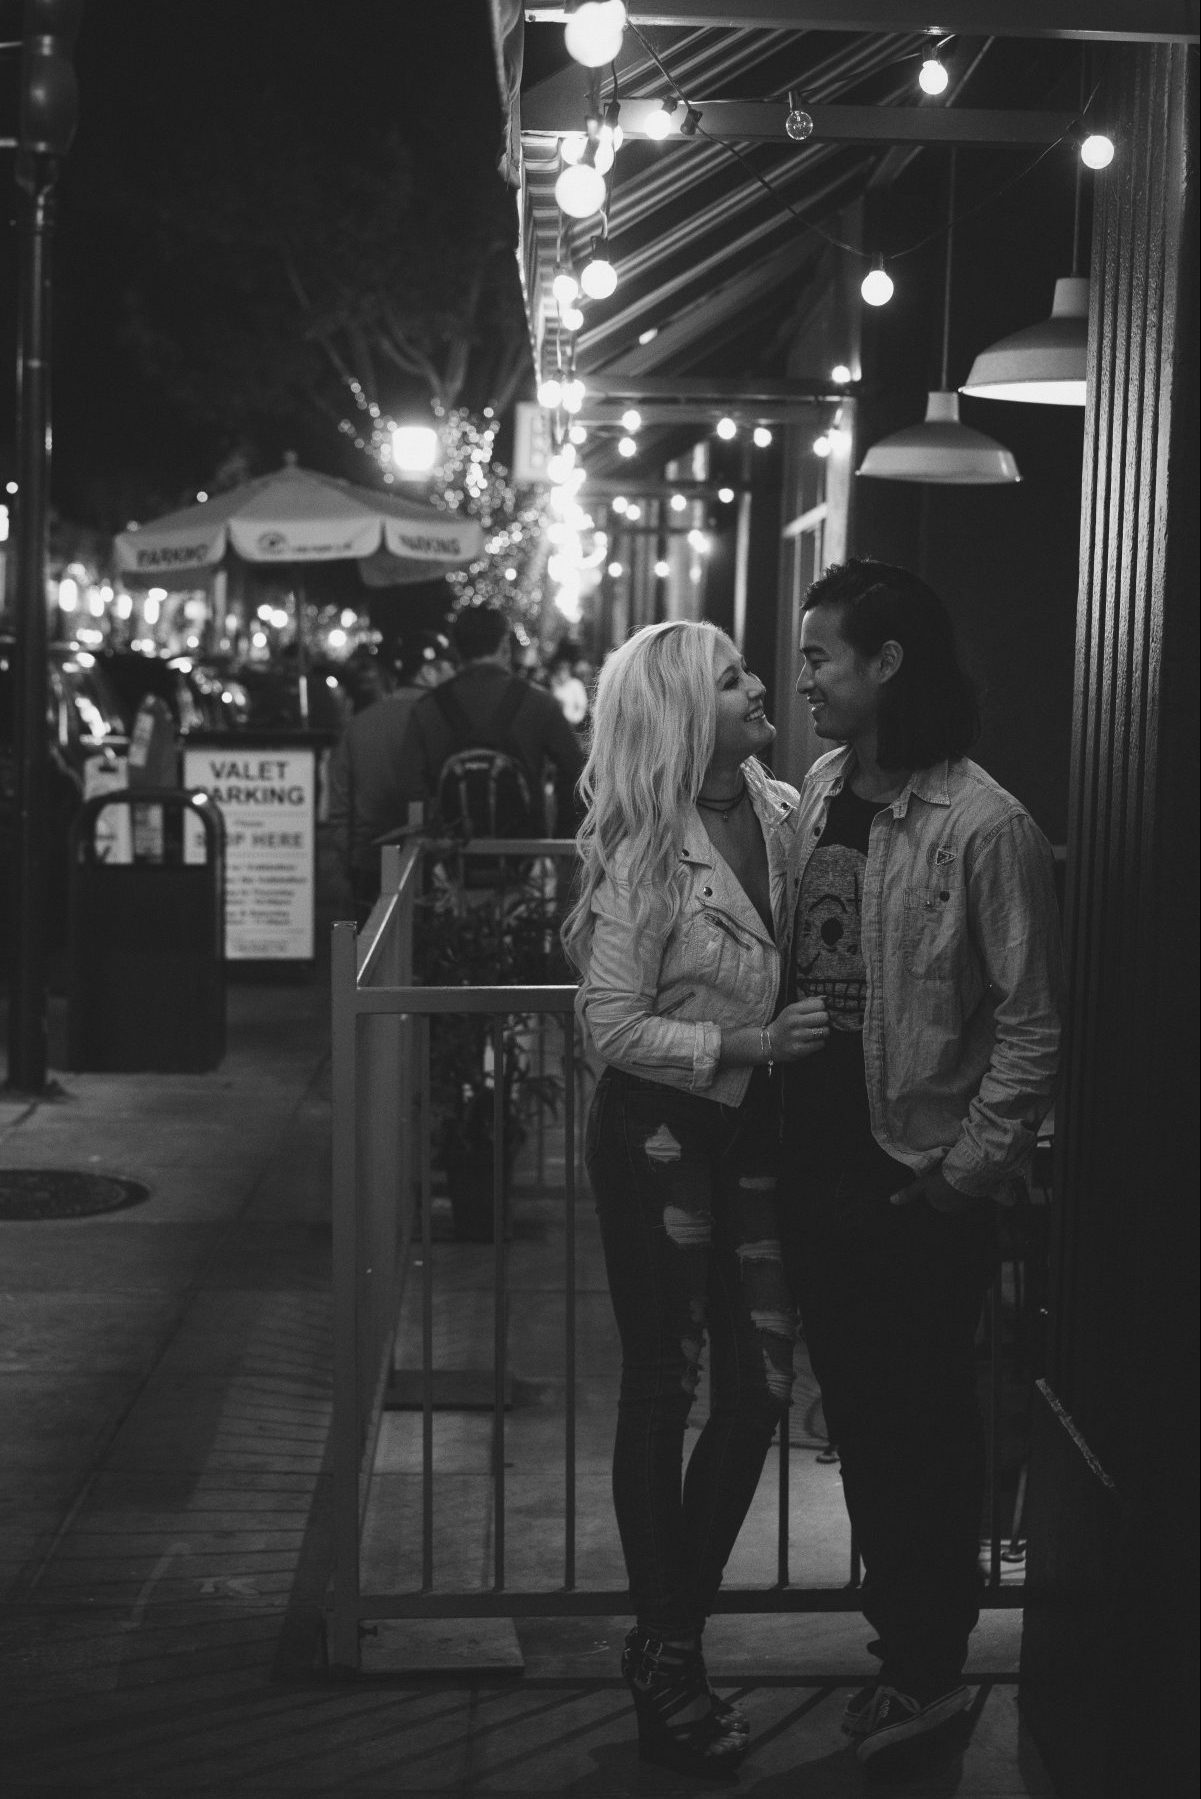 Lovers smiling under the city lights